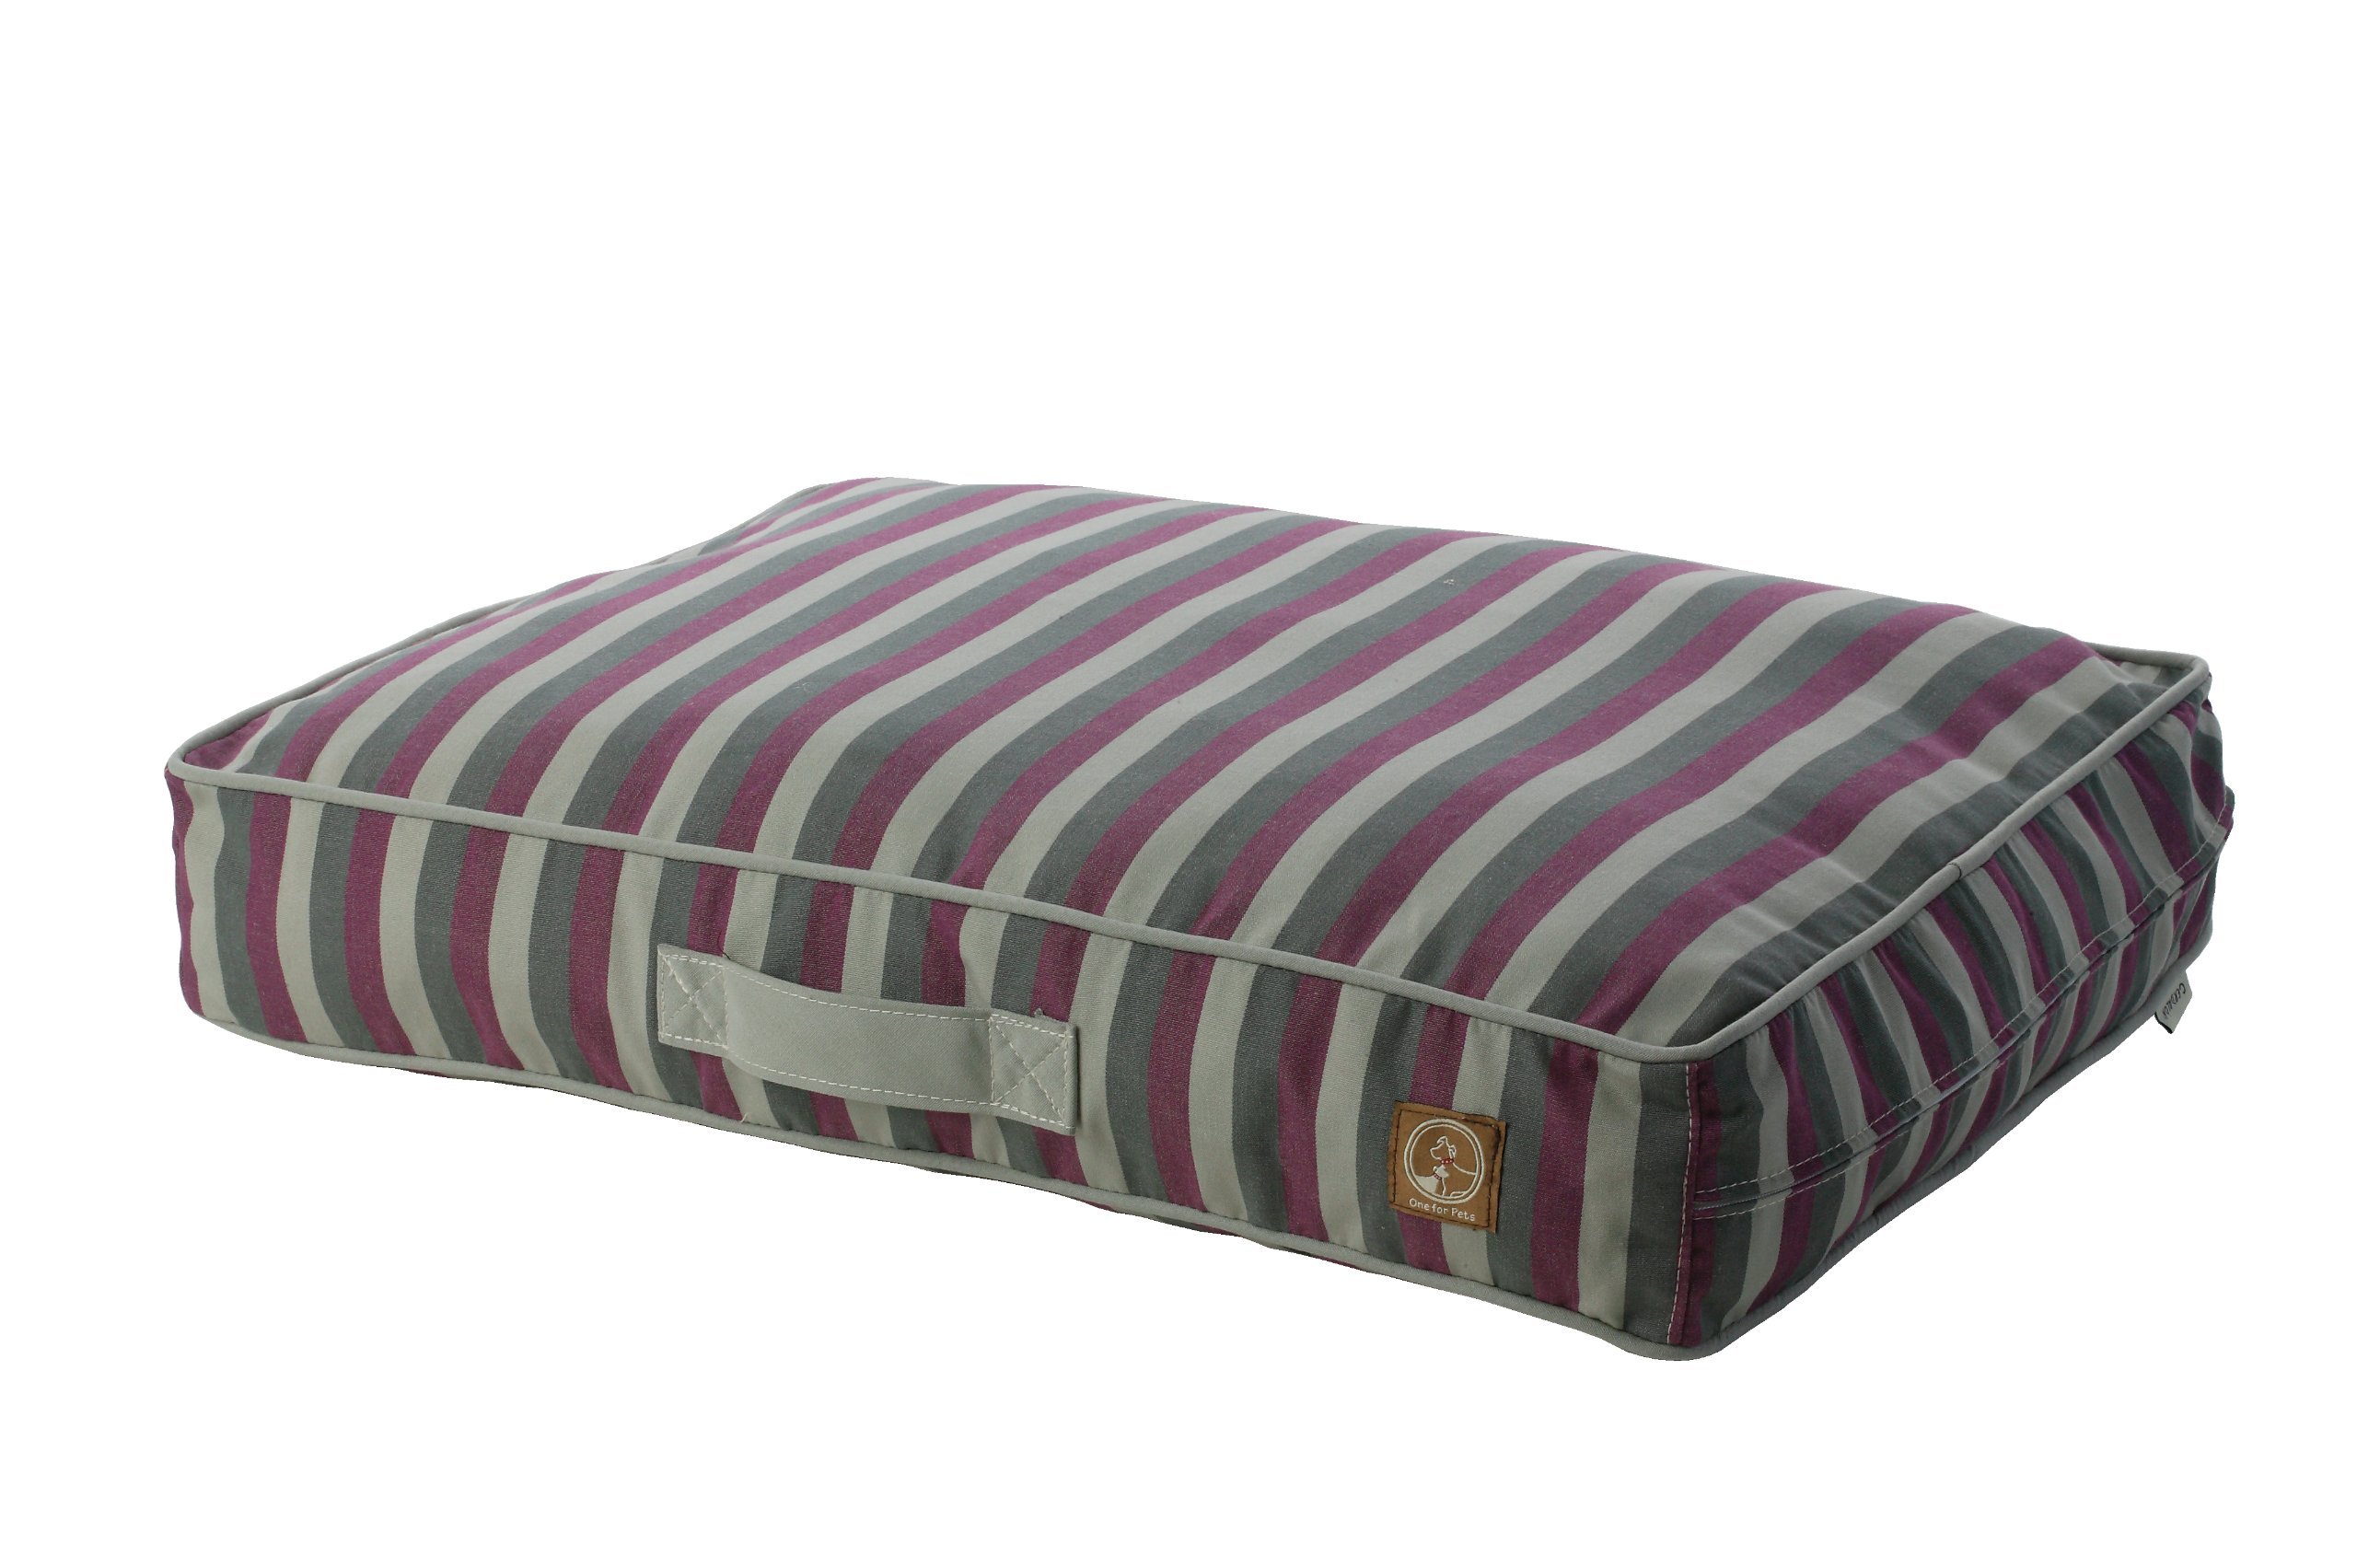 One for Pets Siesta Indoor/Outdoor Pet Bed Dog Bed Duvet Cover, Large, Purple Stripe